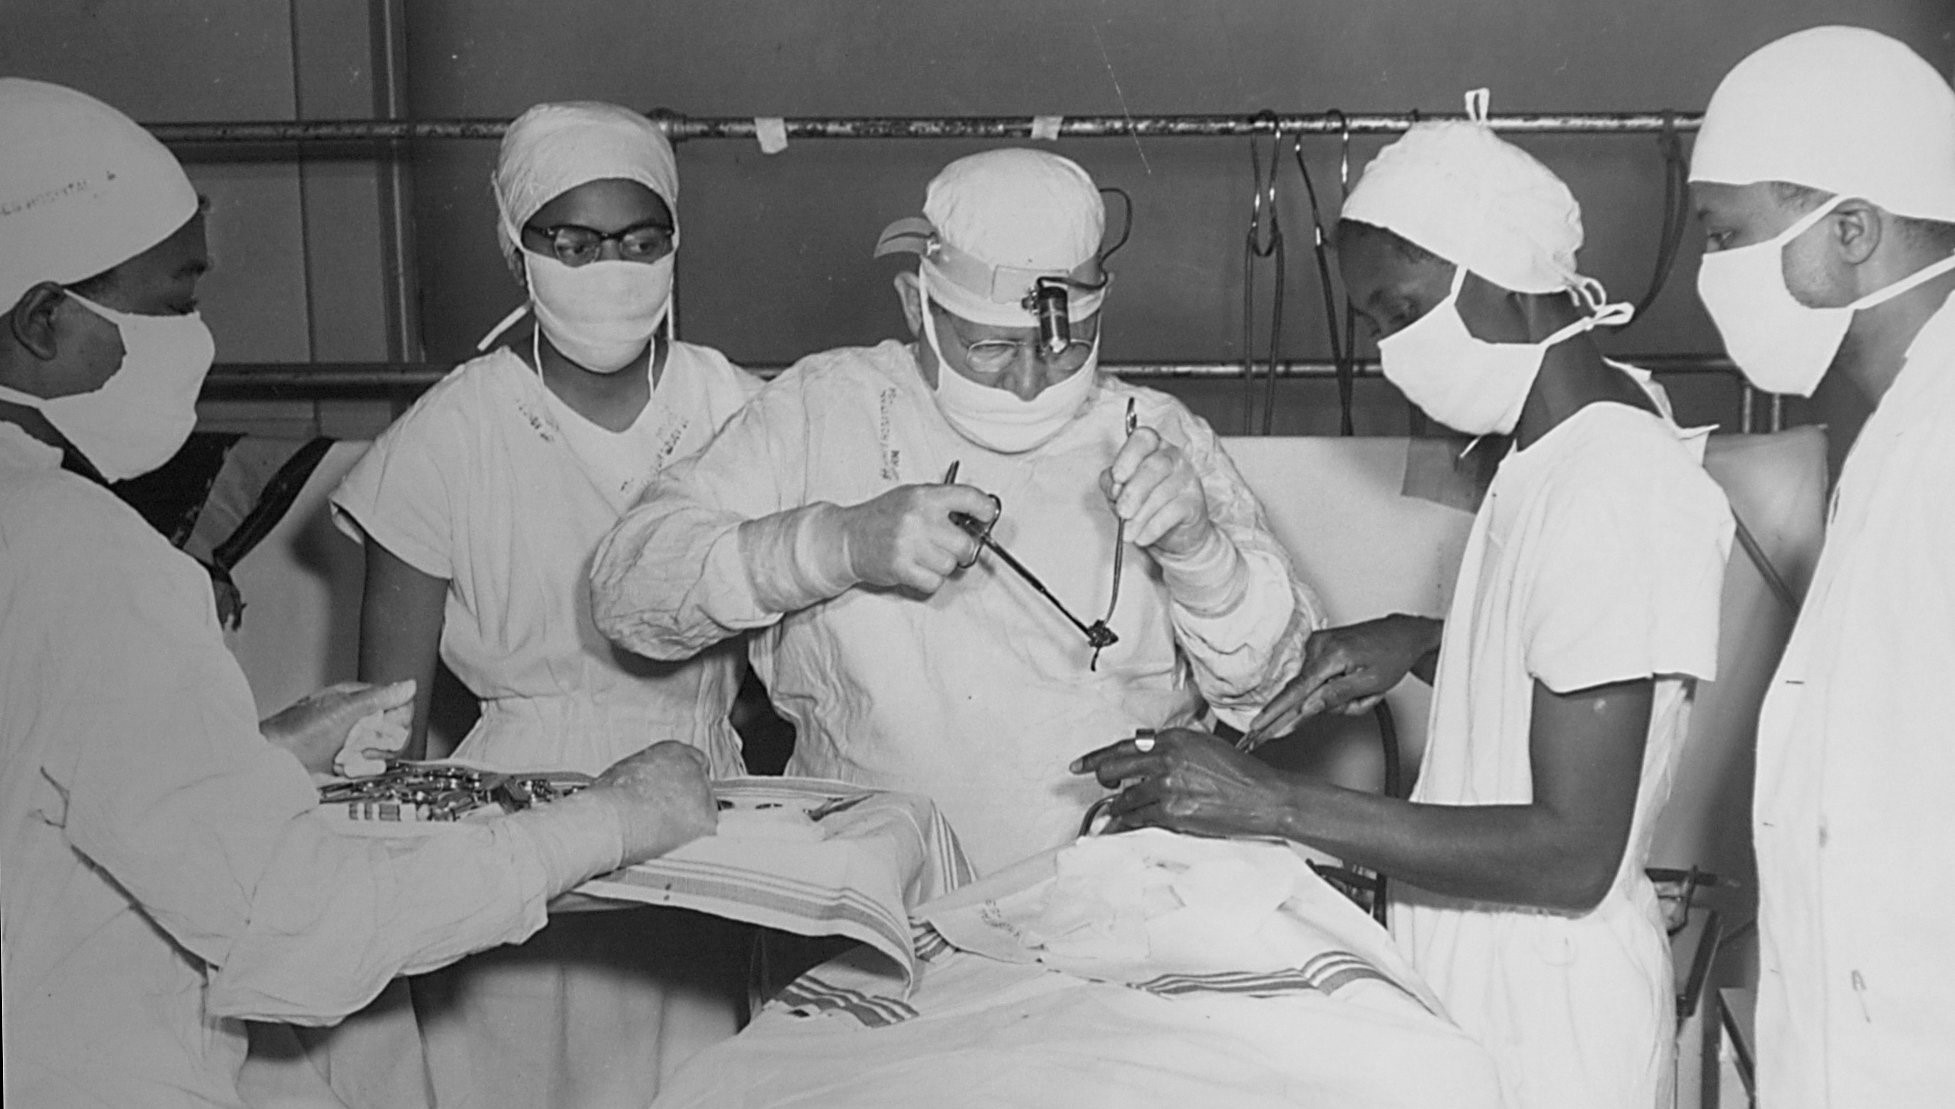 <div class='meta'><div class='origin-logo' data-origin='none'></div><span class='caption-text' data-credit='(Source: Saint Augustine's College Archive)'>Dr. Ballou (center) does a tonsillectomy at St. Agnes Hospital in the late 1940's. Nurse Laura Evans Kelley (to his right) assists.</span></div>